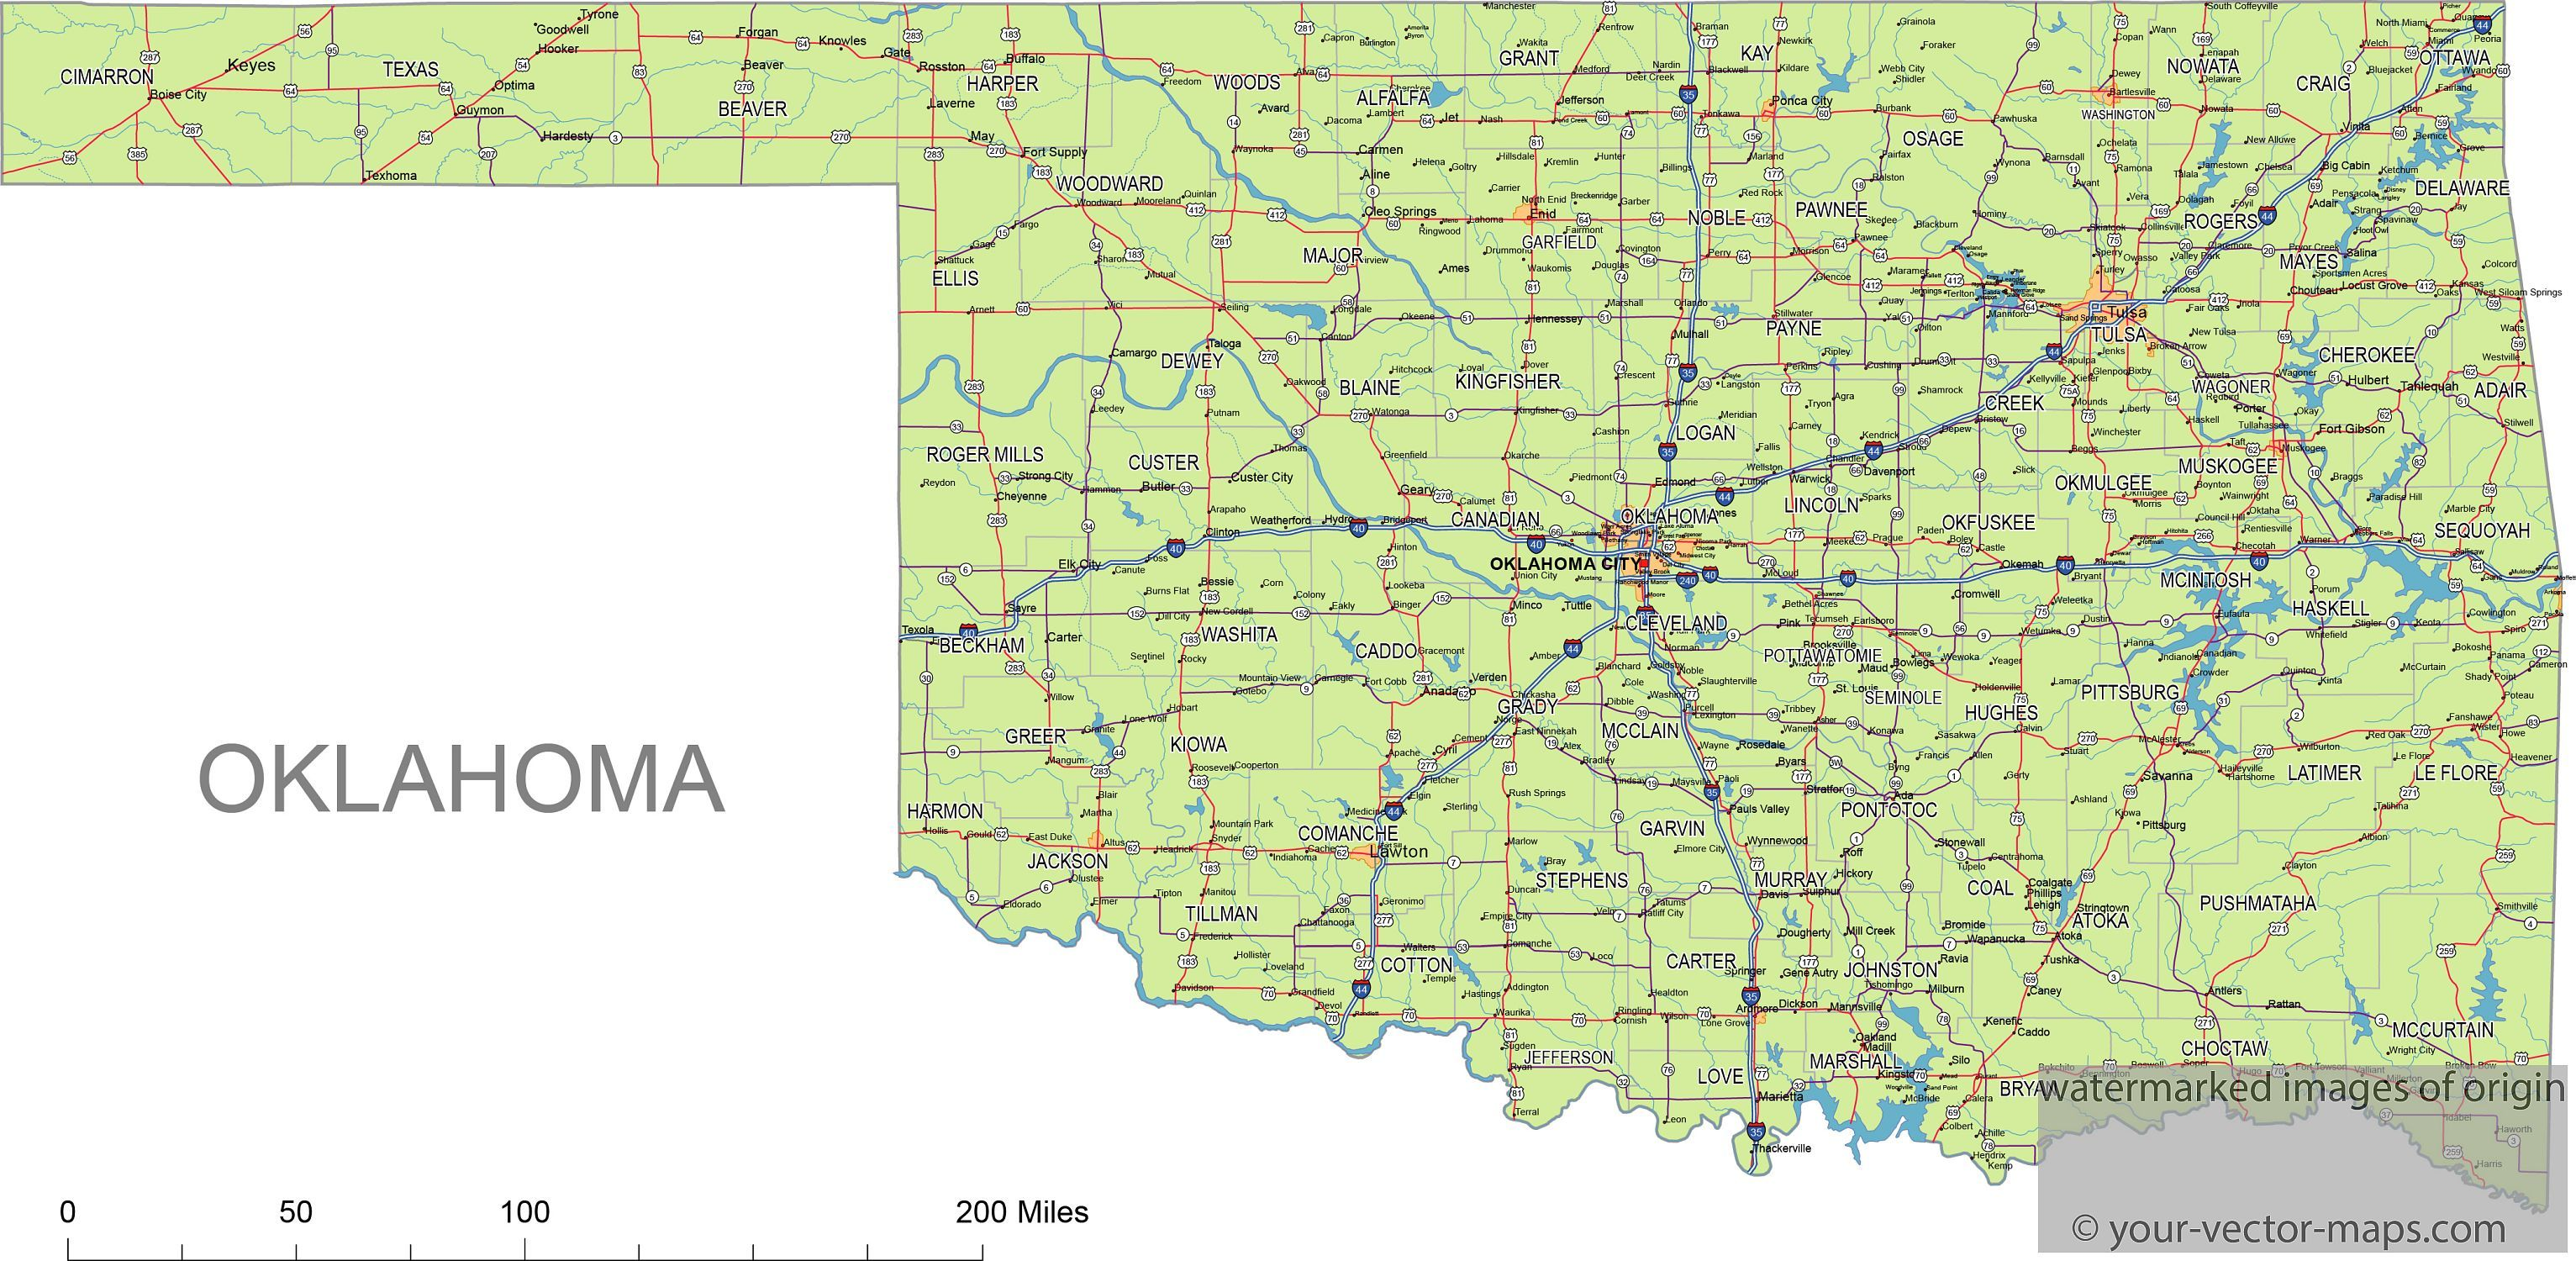 Oklahoma State Route Network Map Oklahoma Highways Map Cities Of - Map-of-us-states-and-rivers